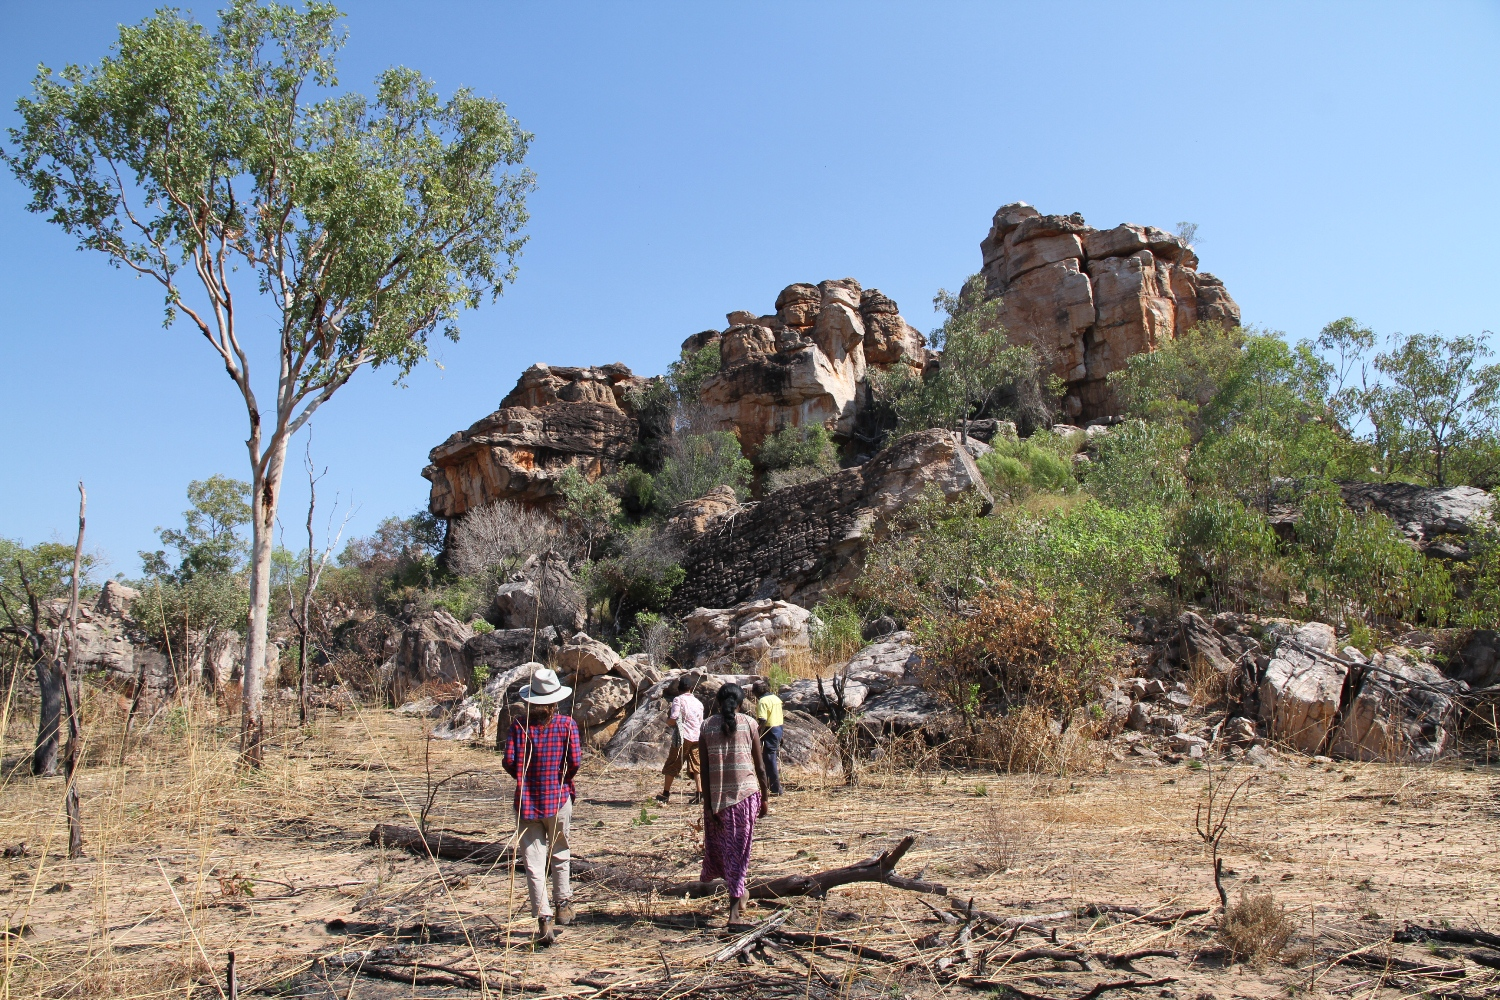 Dennis Bundamurra leads the way to the eye of the Wandjina rock art sites. © AGWA 2015